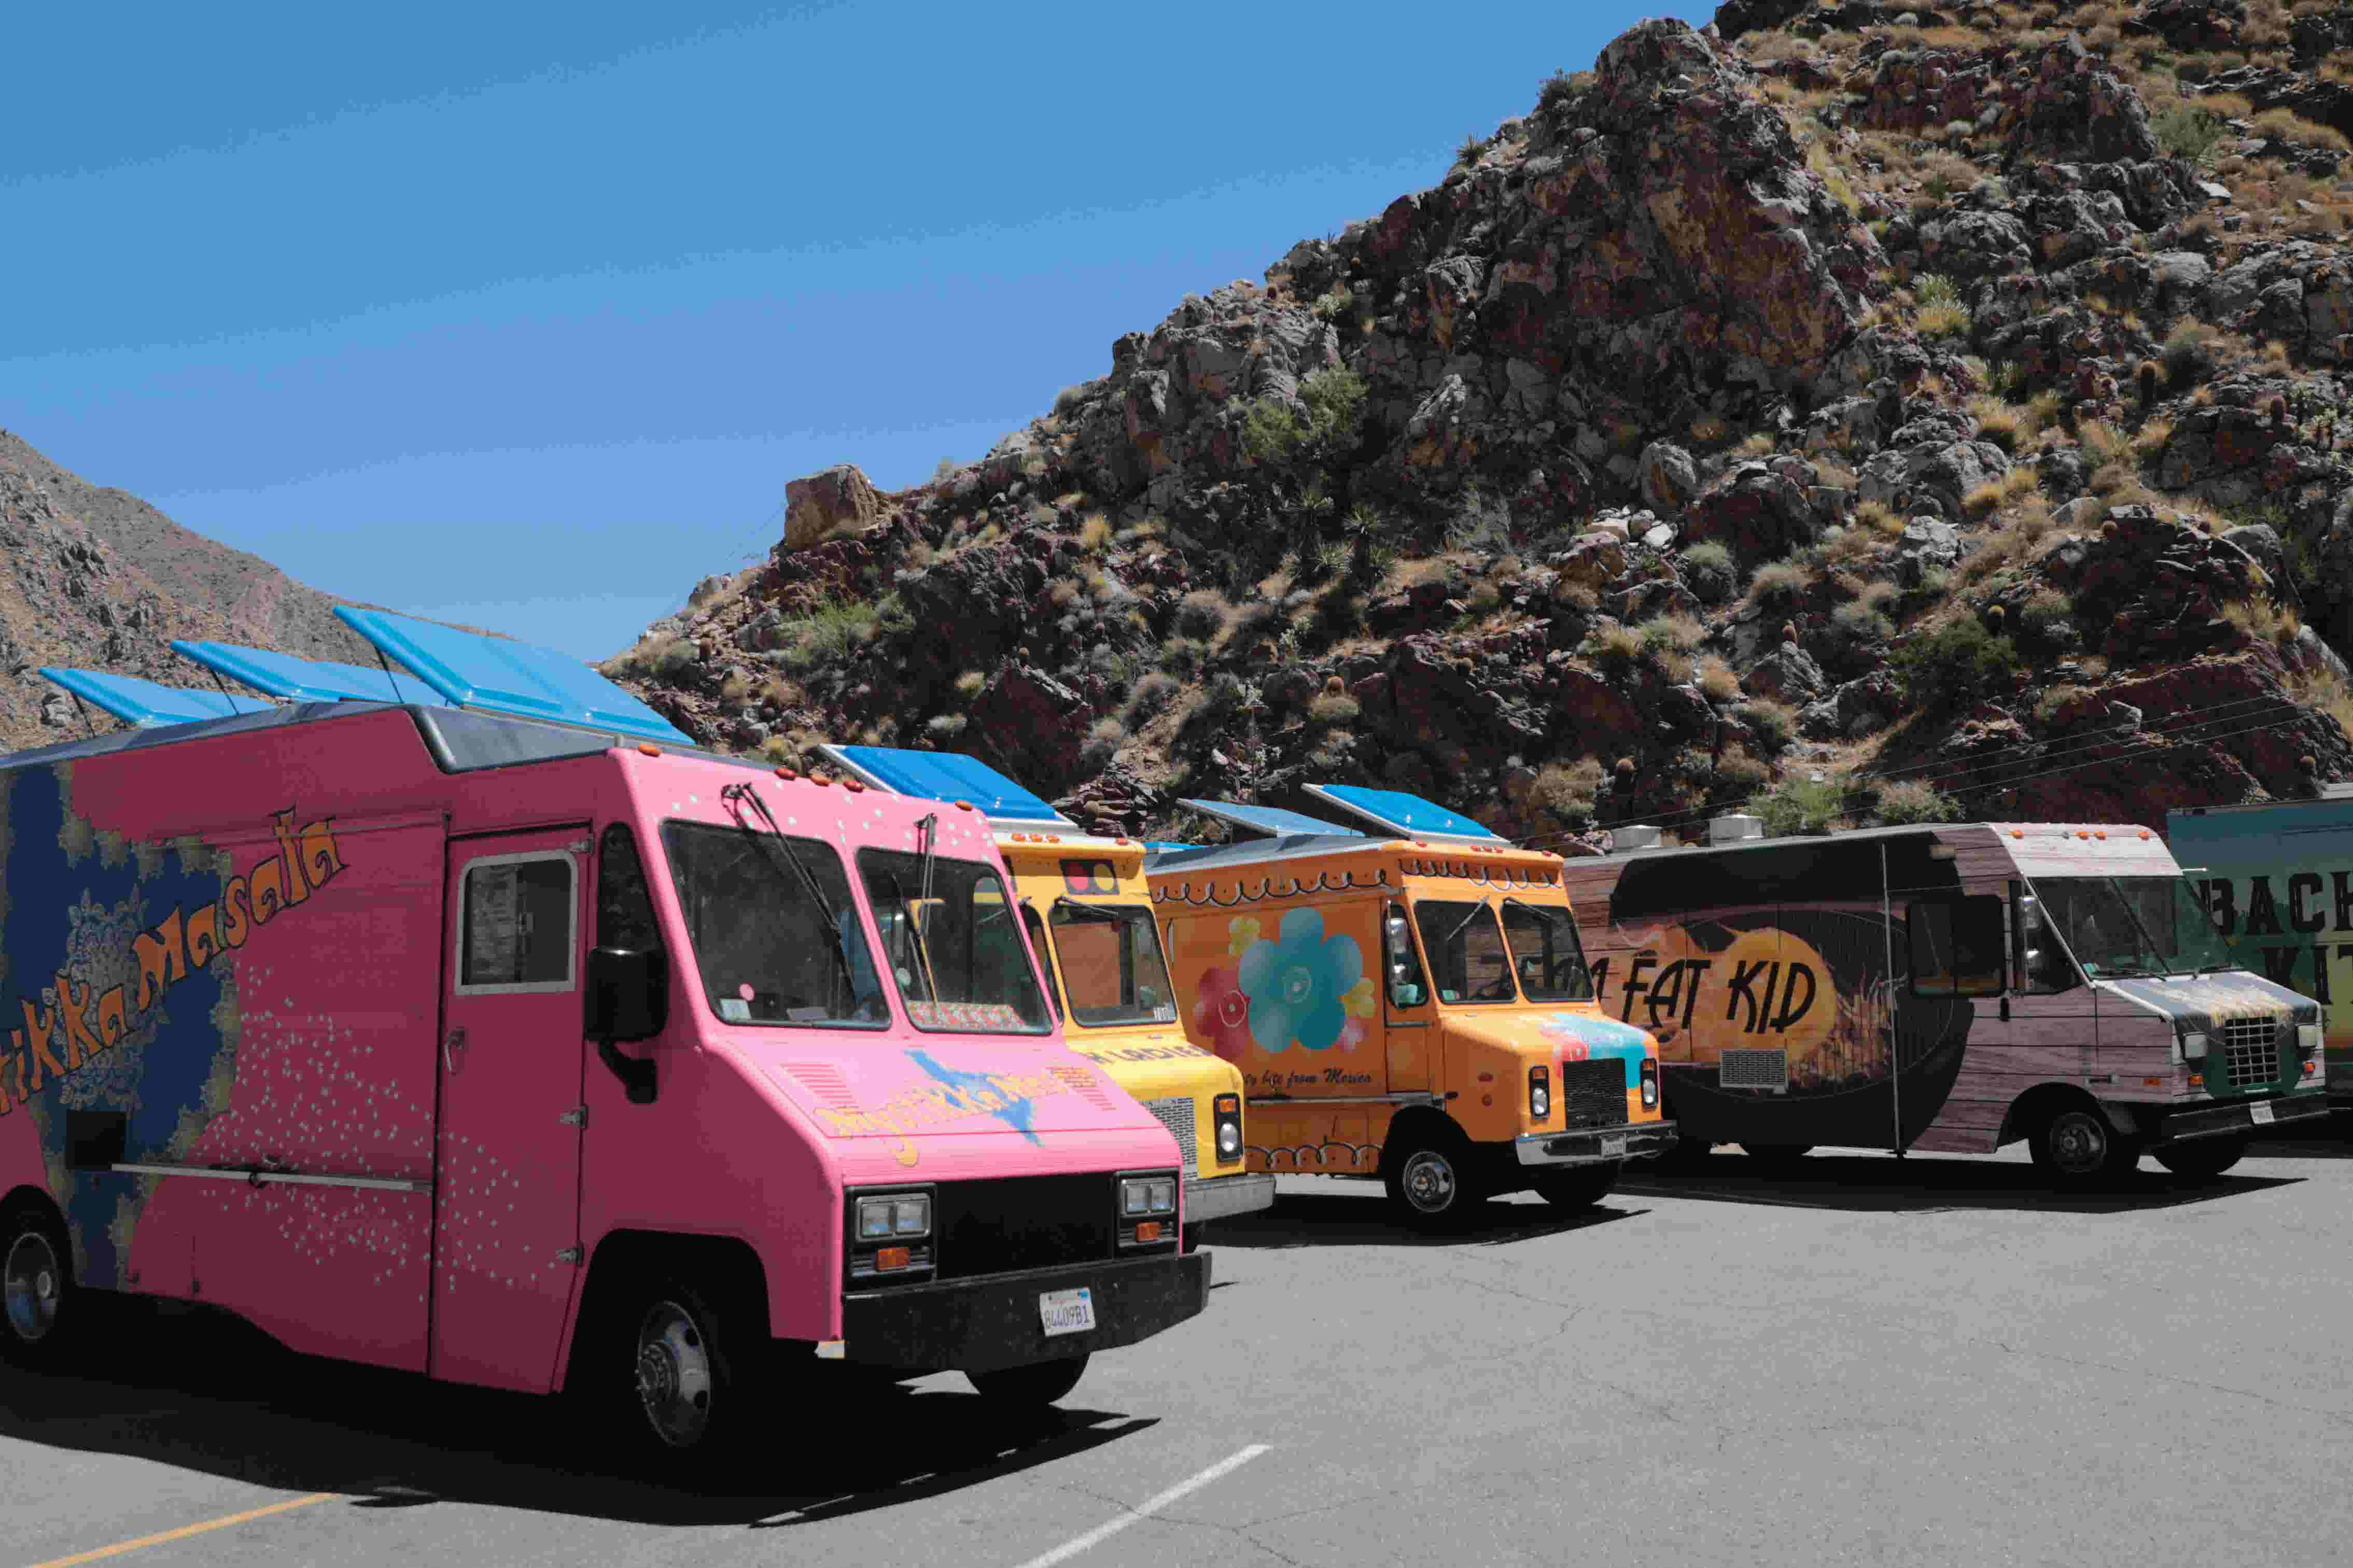 'Oh my God': 'The Great Food Truck Race' serves Palm Springs agave